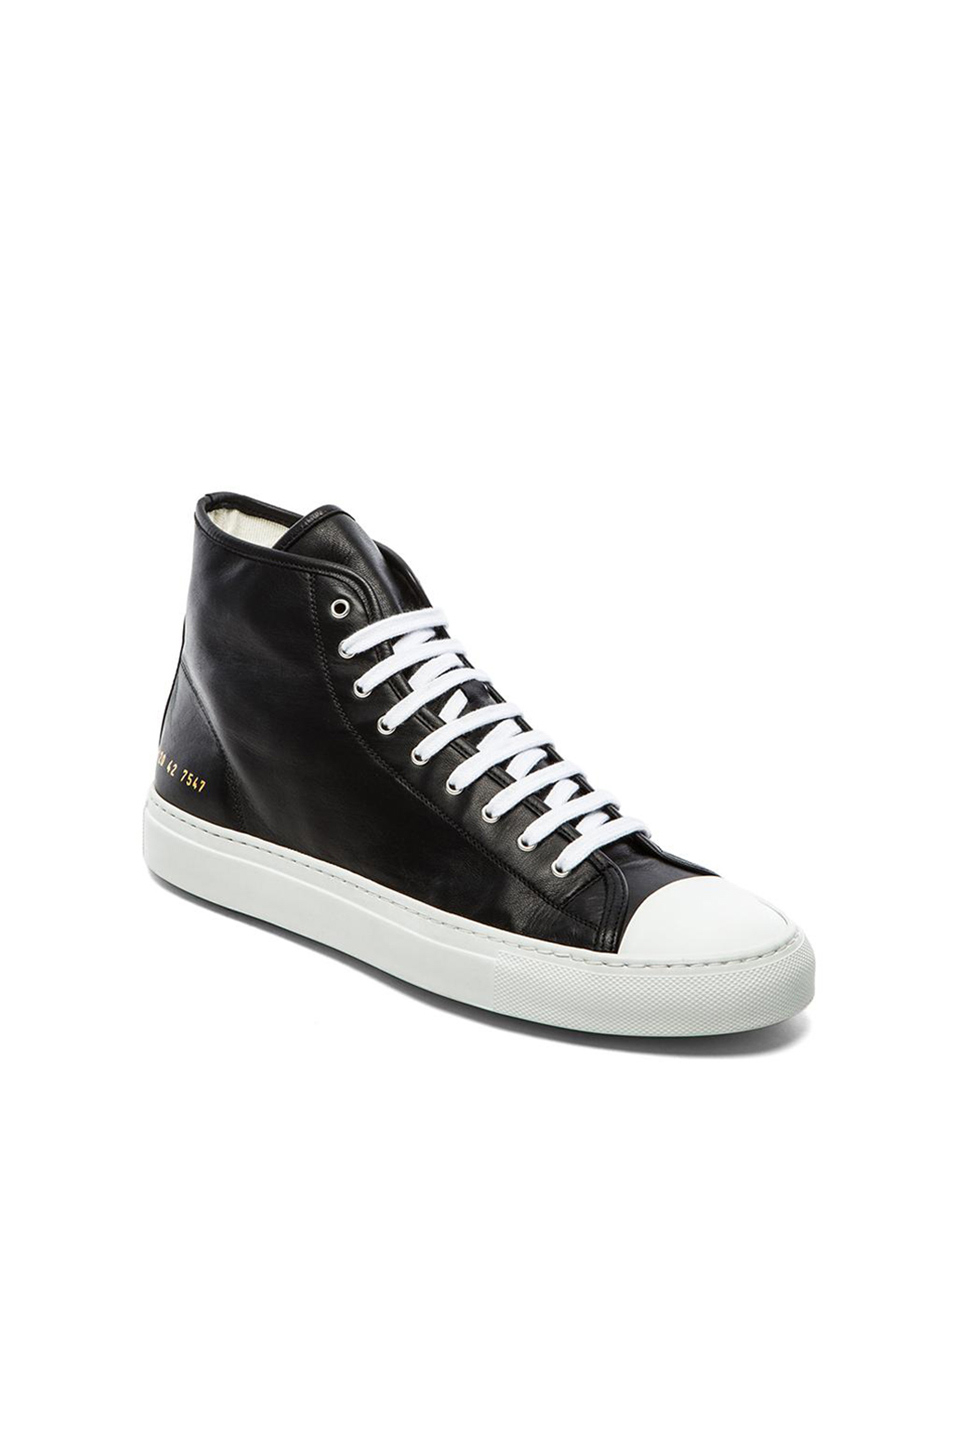 Woman by Common Projects Black & White Tournament High Cap Toe Sneakers VFW5Z